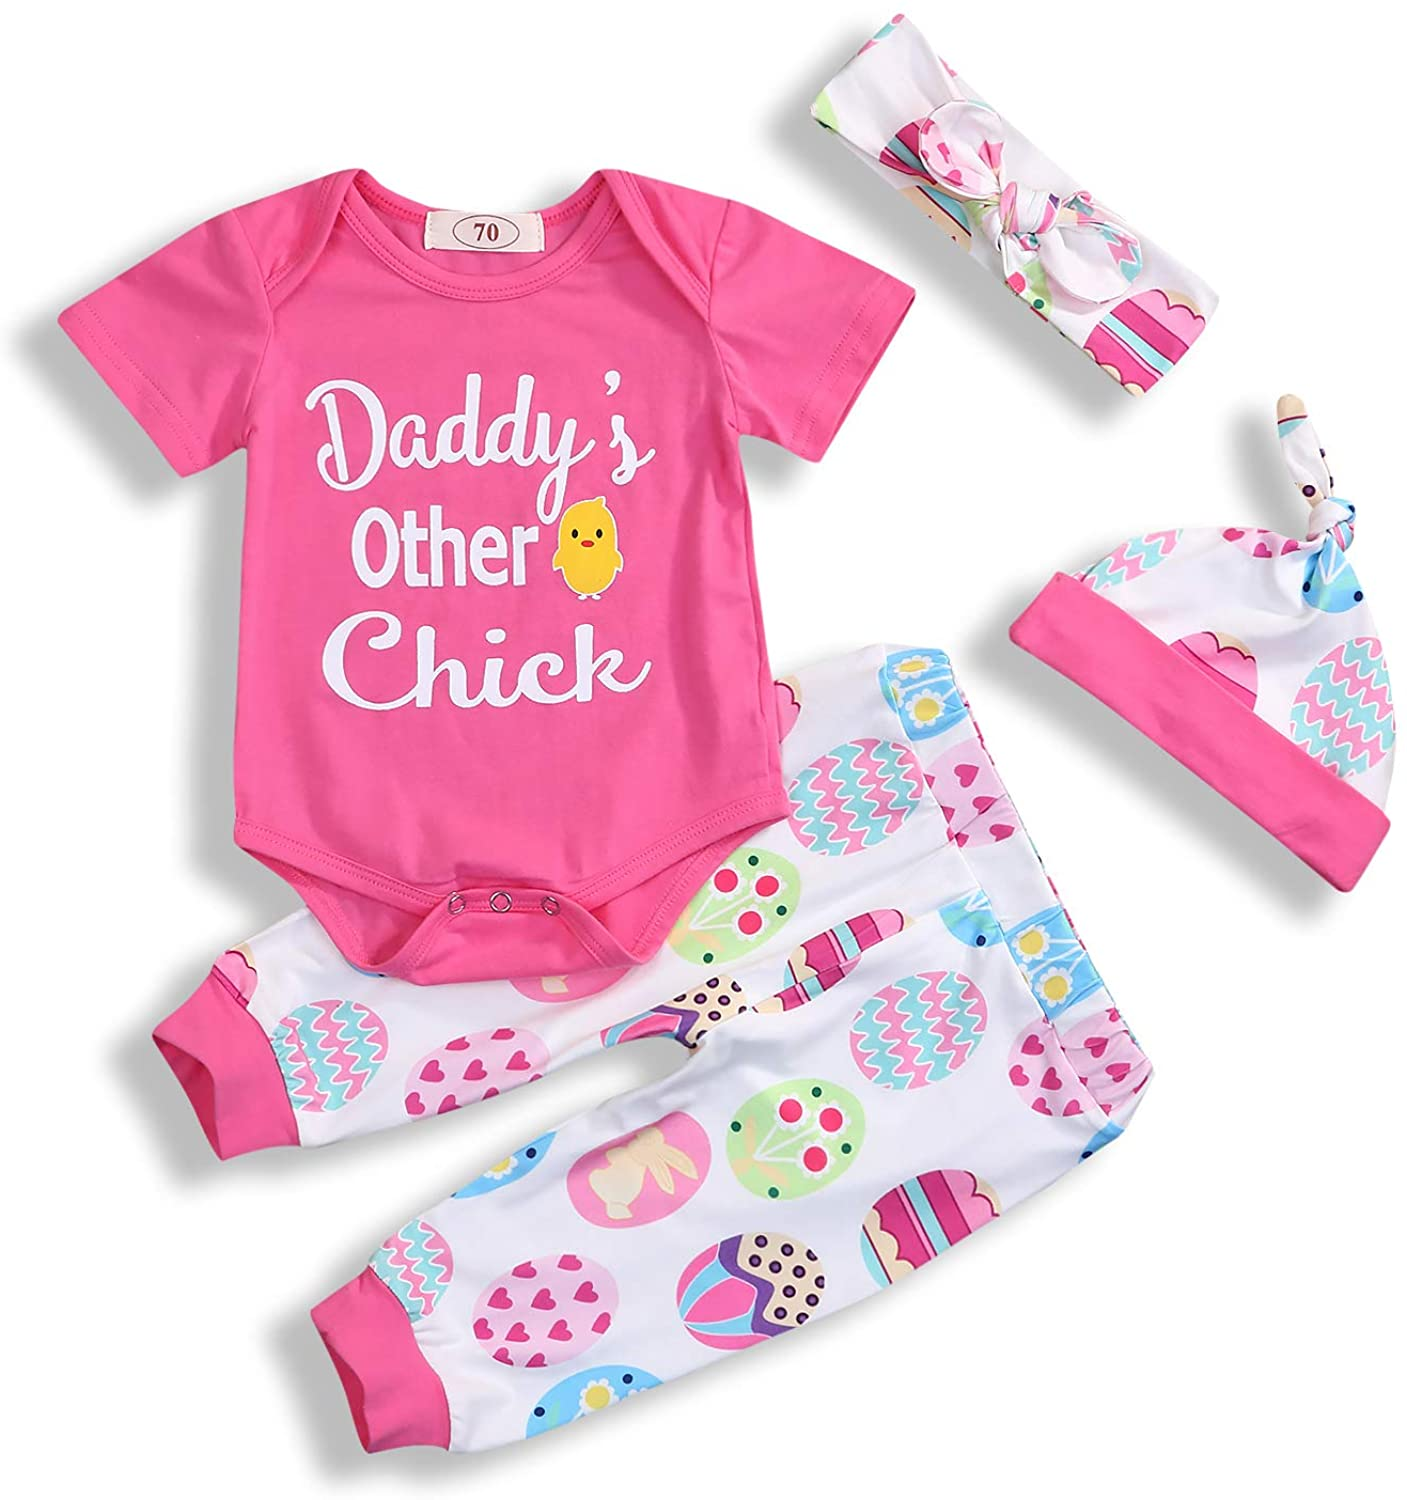 4Pcs Baby Girl Easter Outfits Sets Daddys Other Chick Easter Egg Easter Chick Print Romper Pants Hat Headband 0-18M